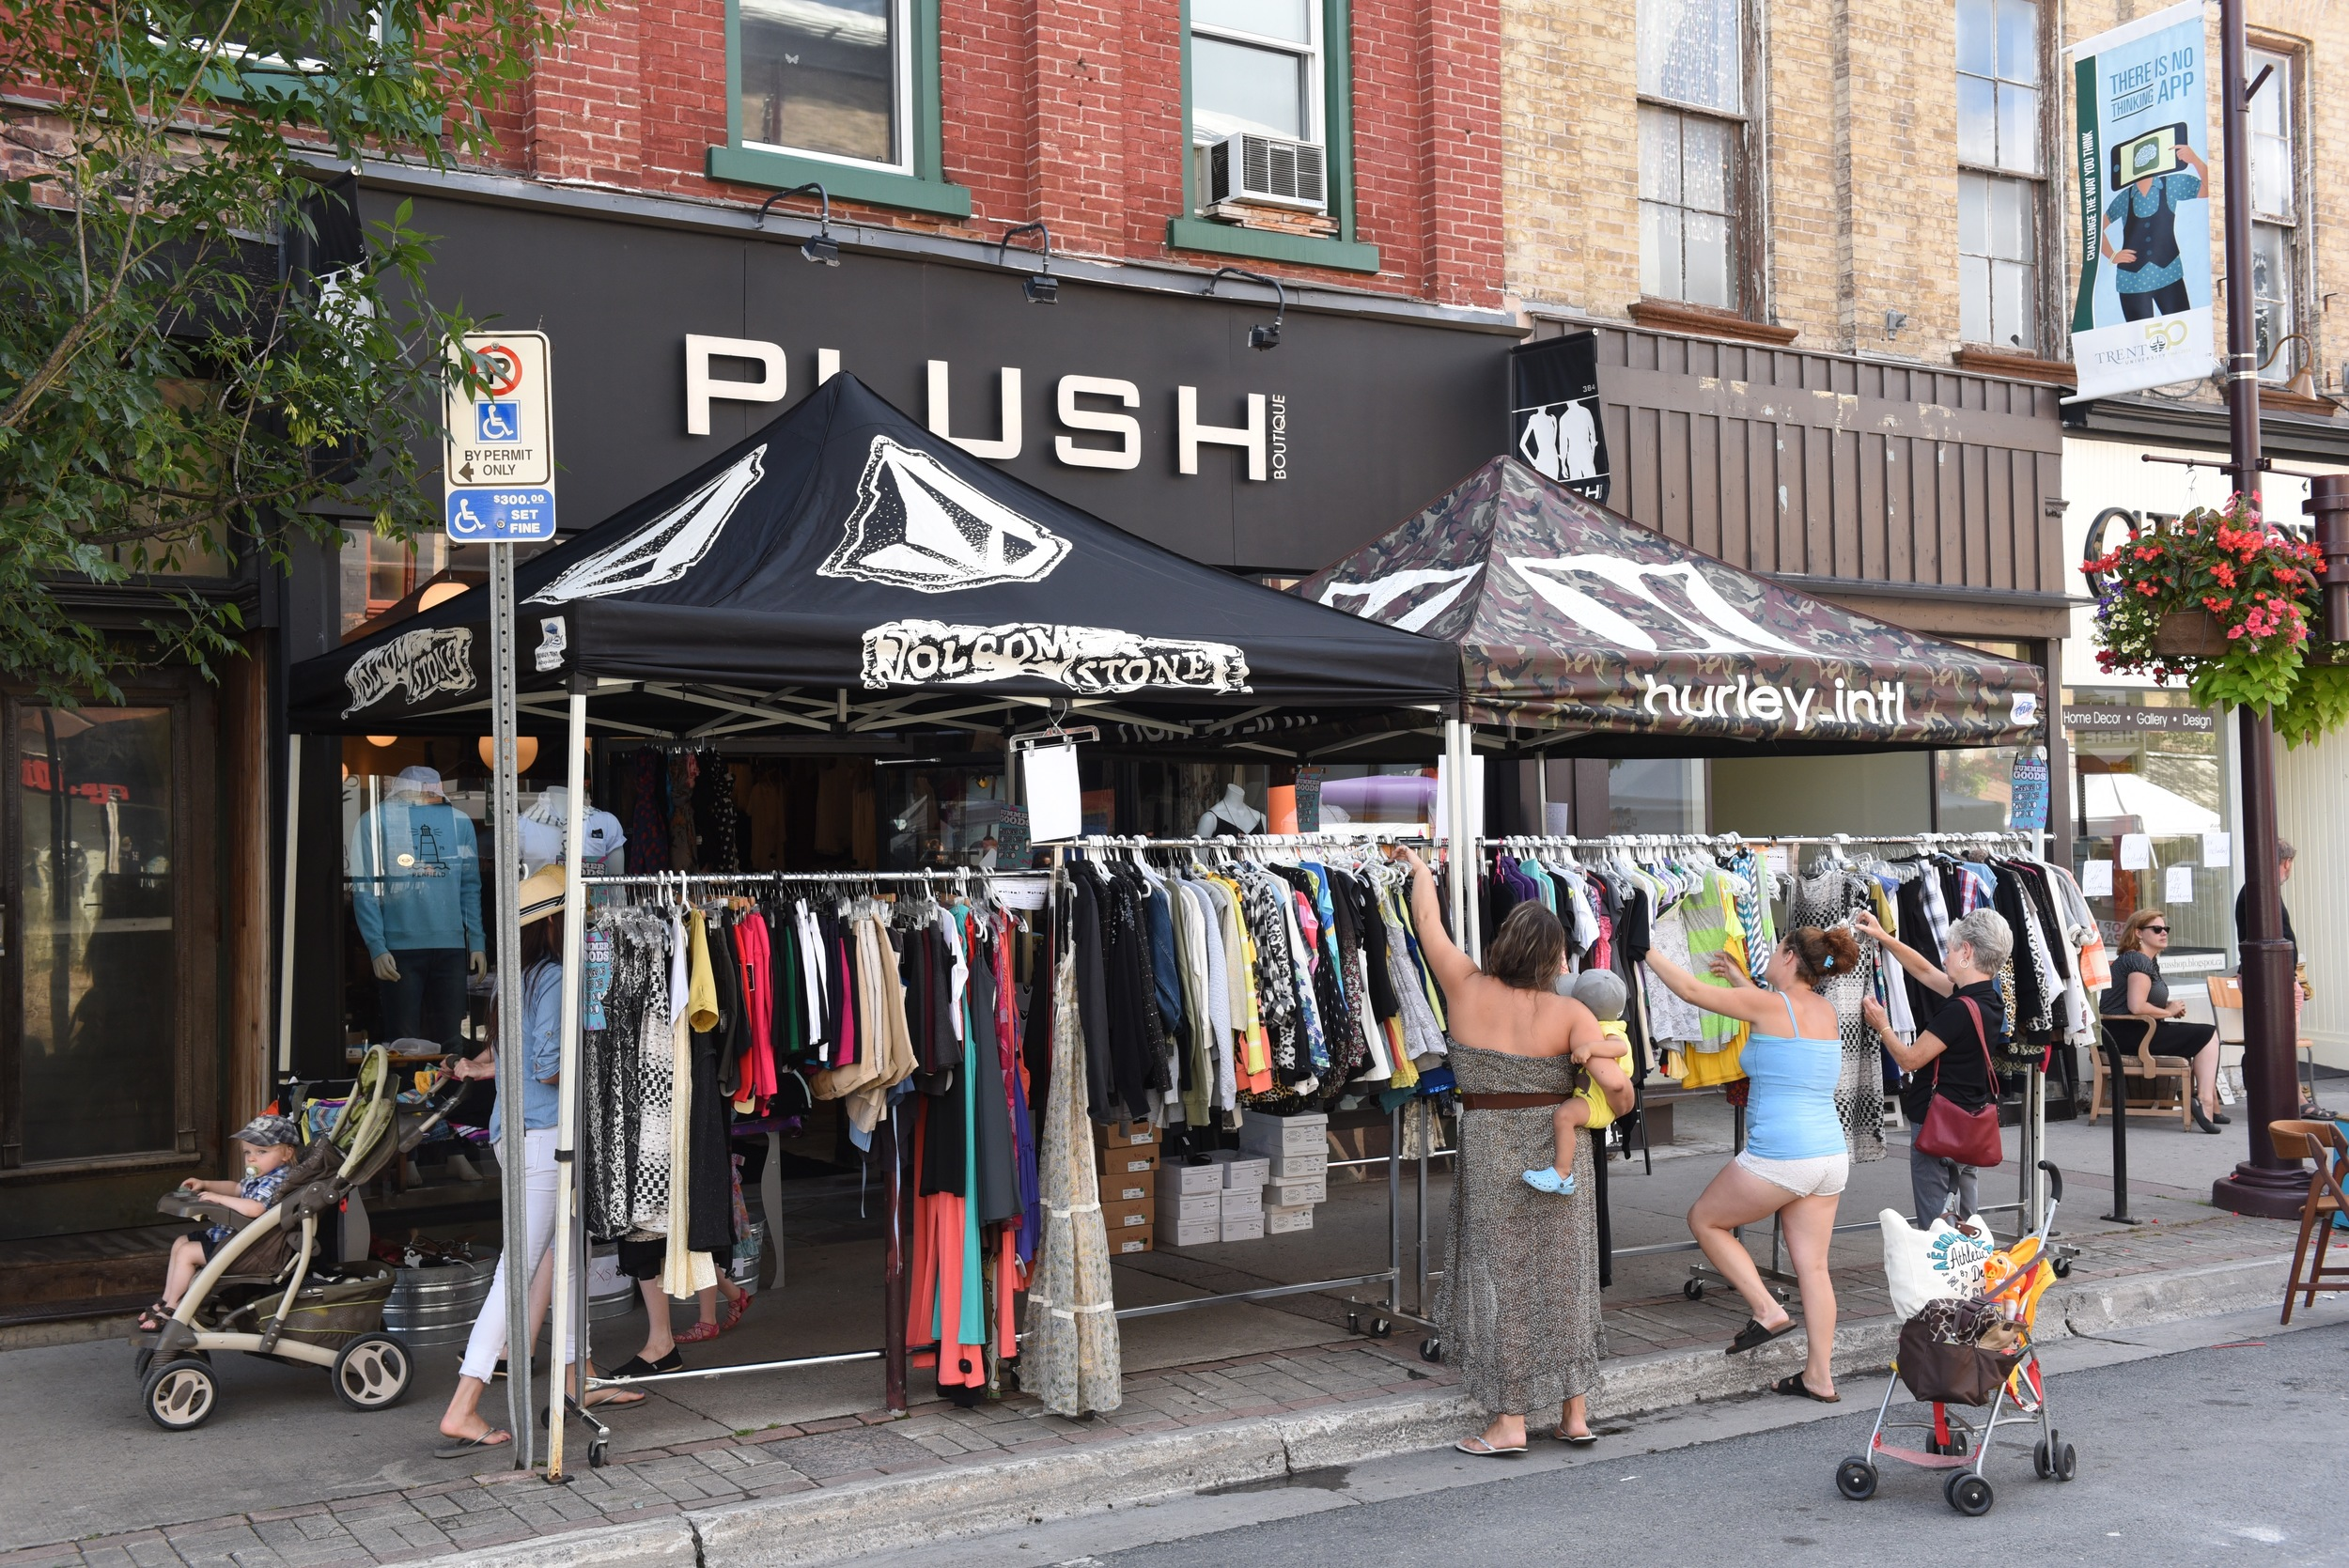 Hold a Pulse Sidewalk Sale